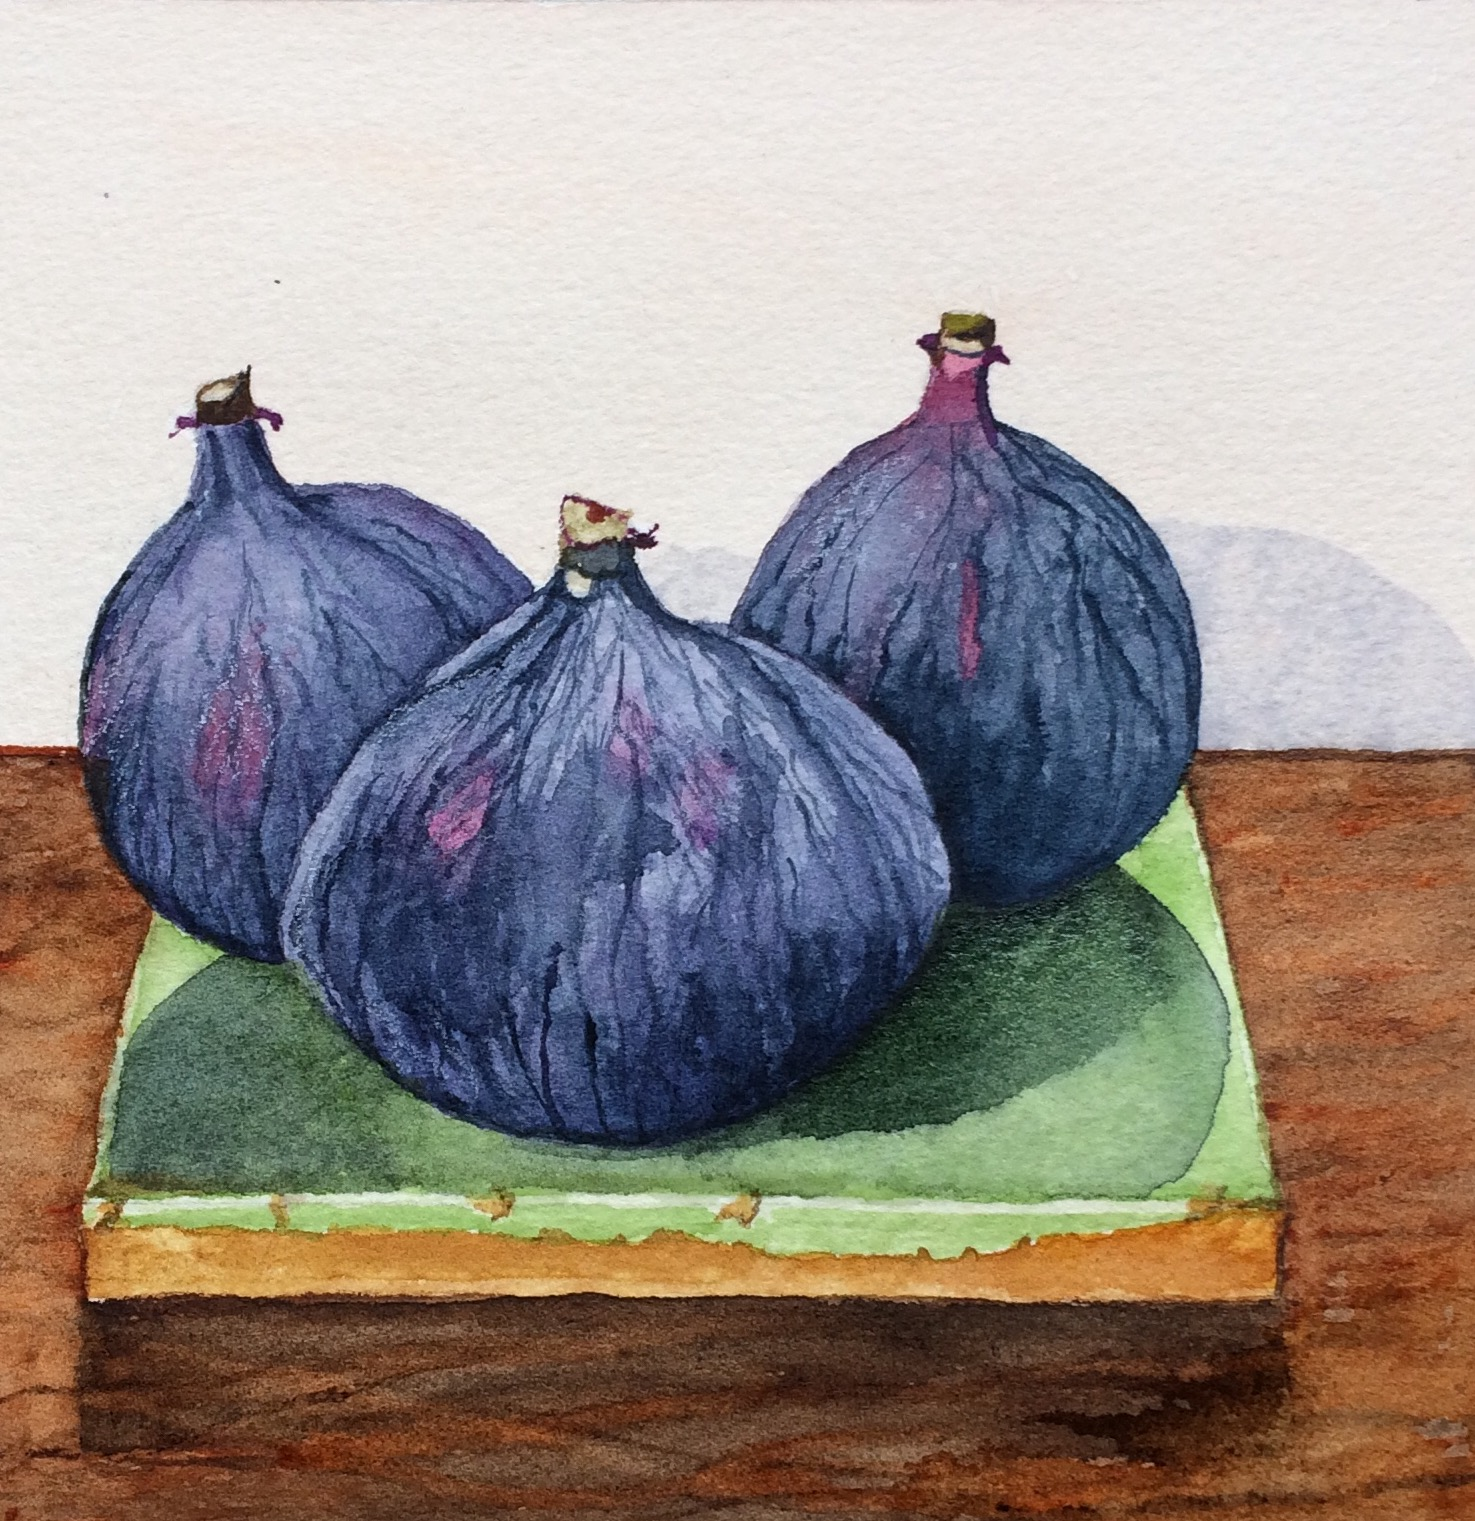 Turkish figs - sold